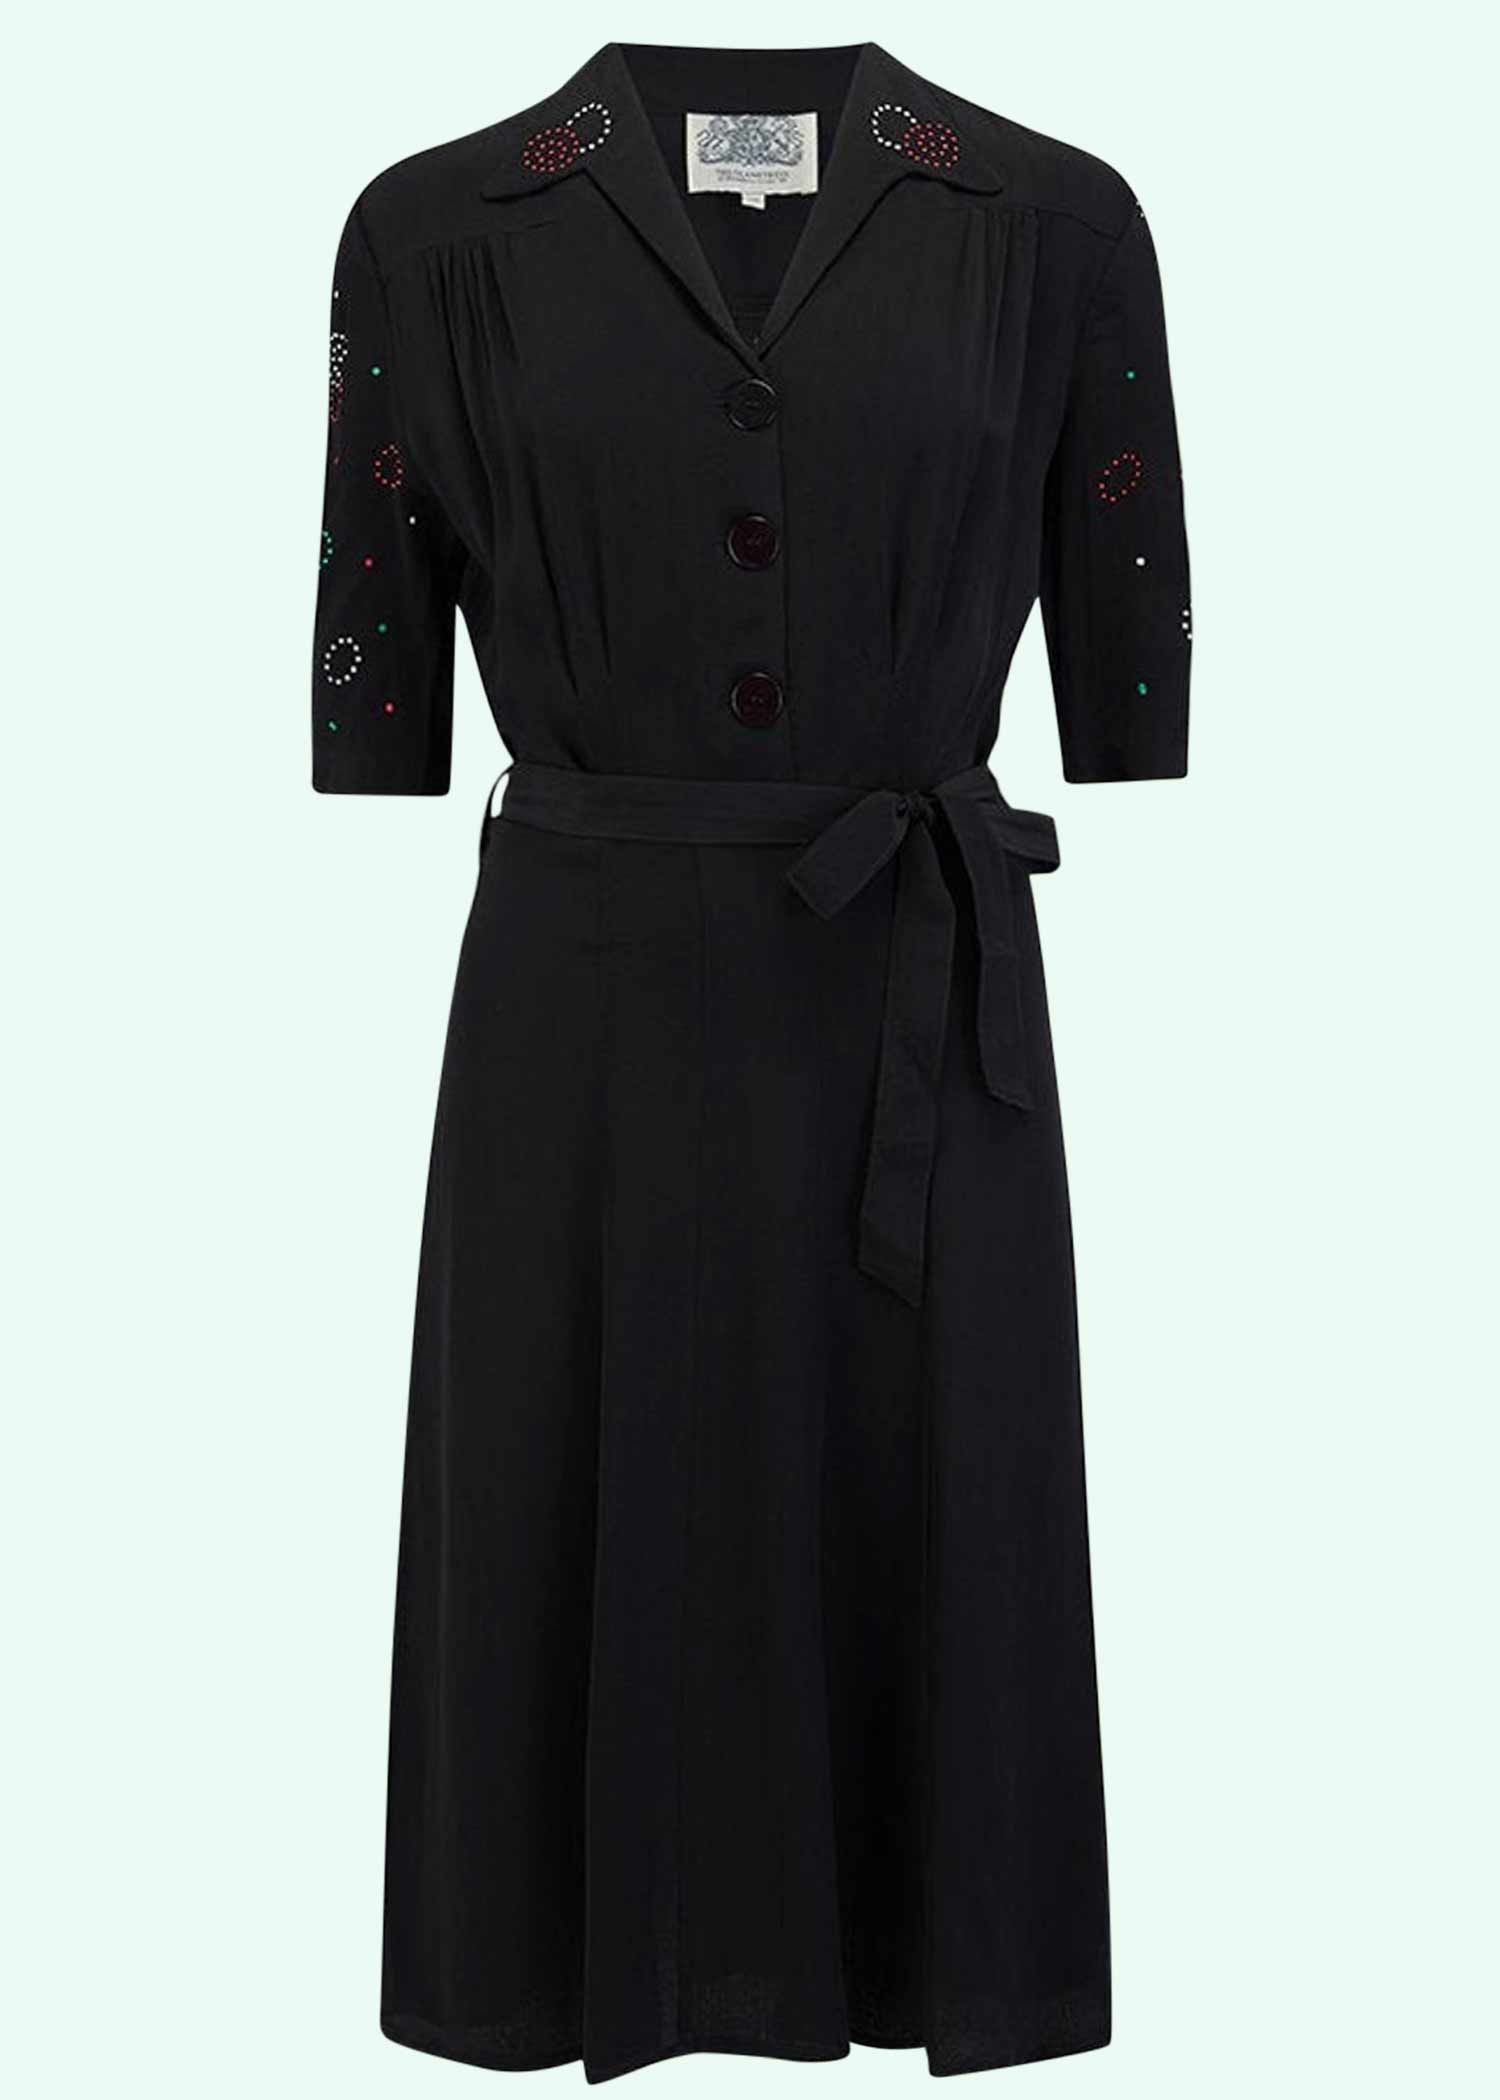 Black dress from seamstress of bloomsbury